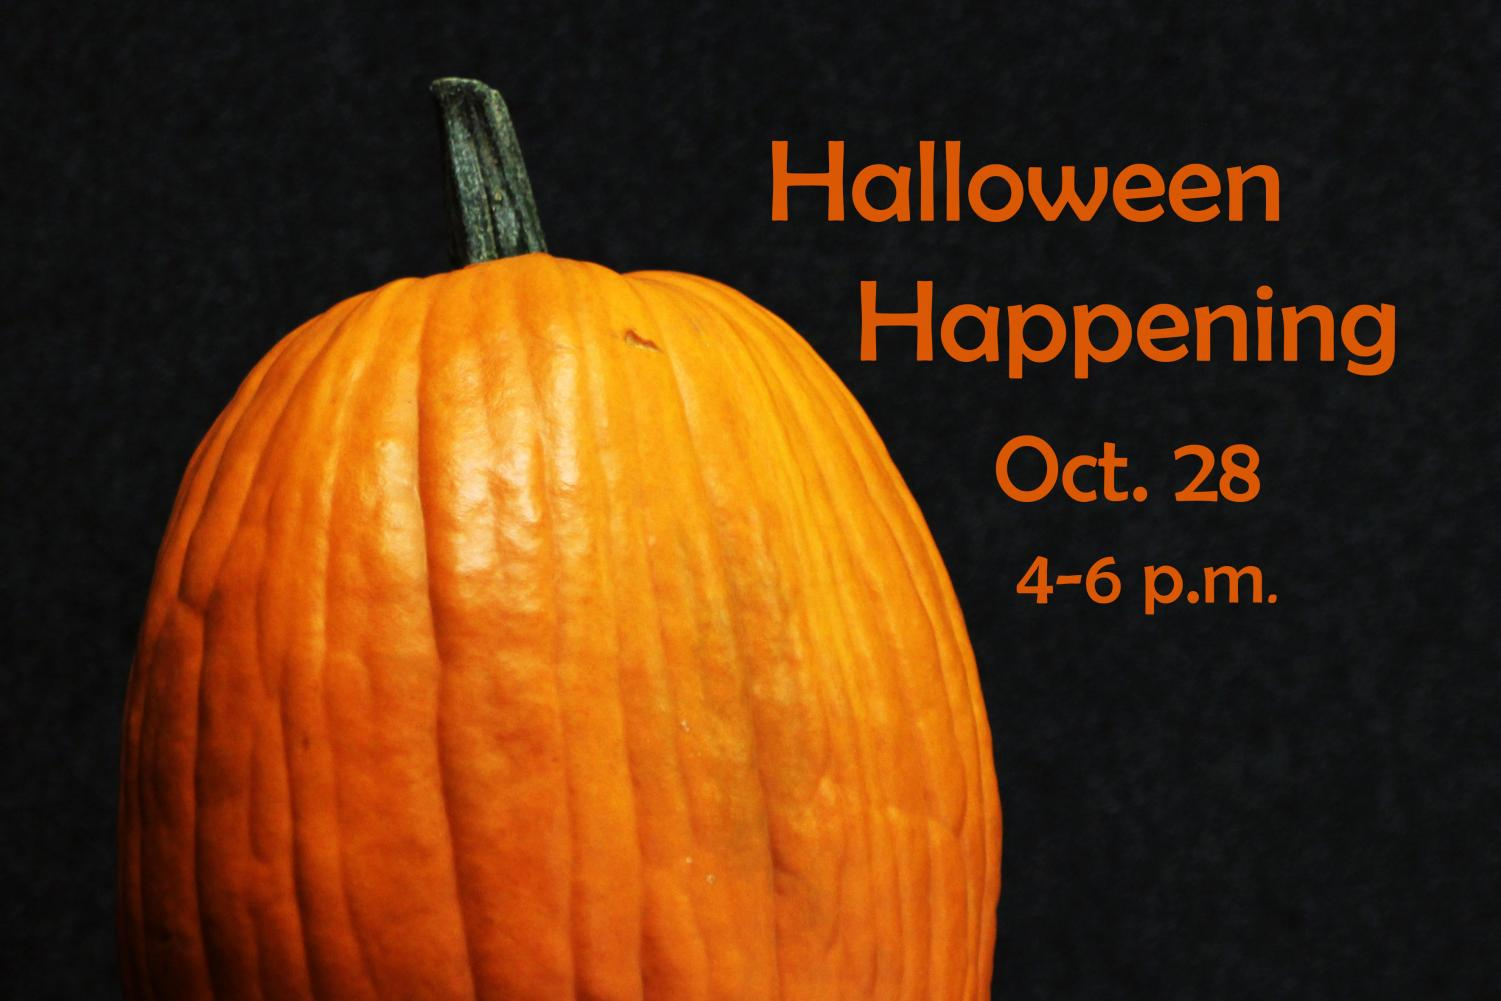 Canyon High School will host the annual Halloween Happening Oct. 28.